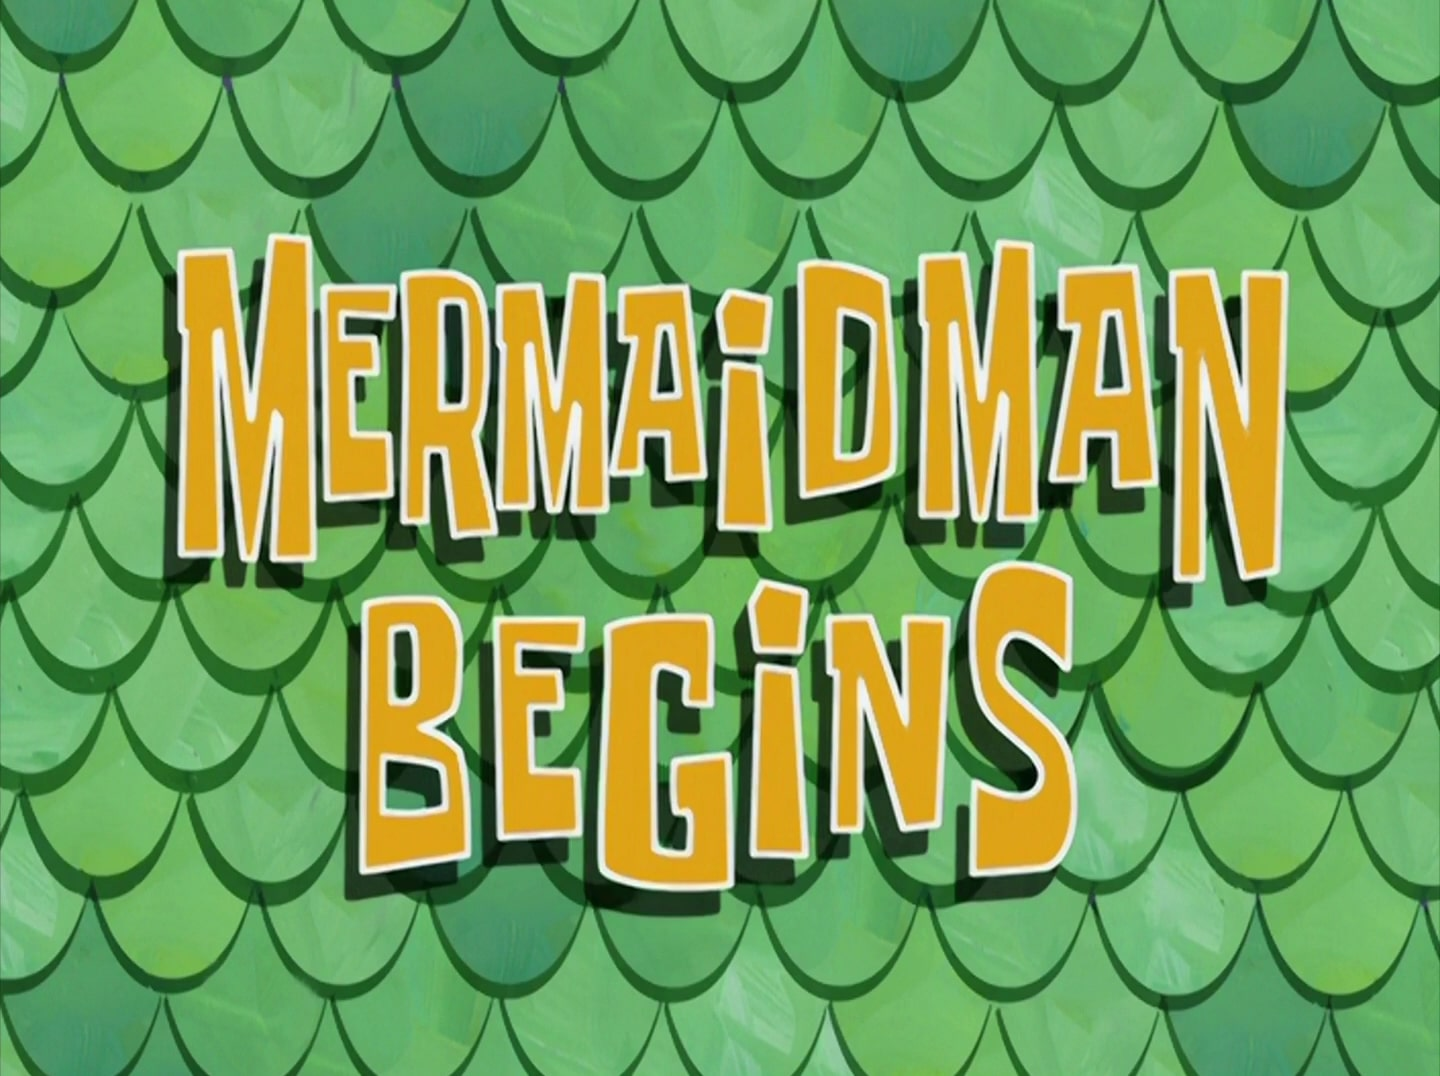 File:Mermaid Man Begins.jpg